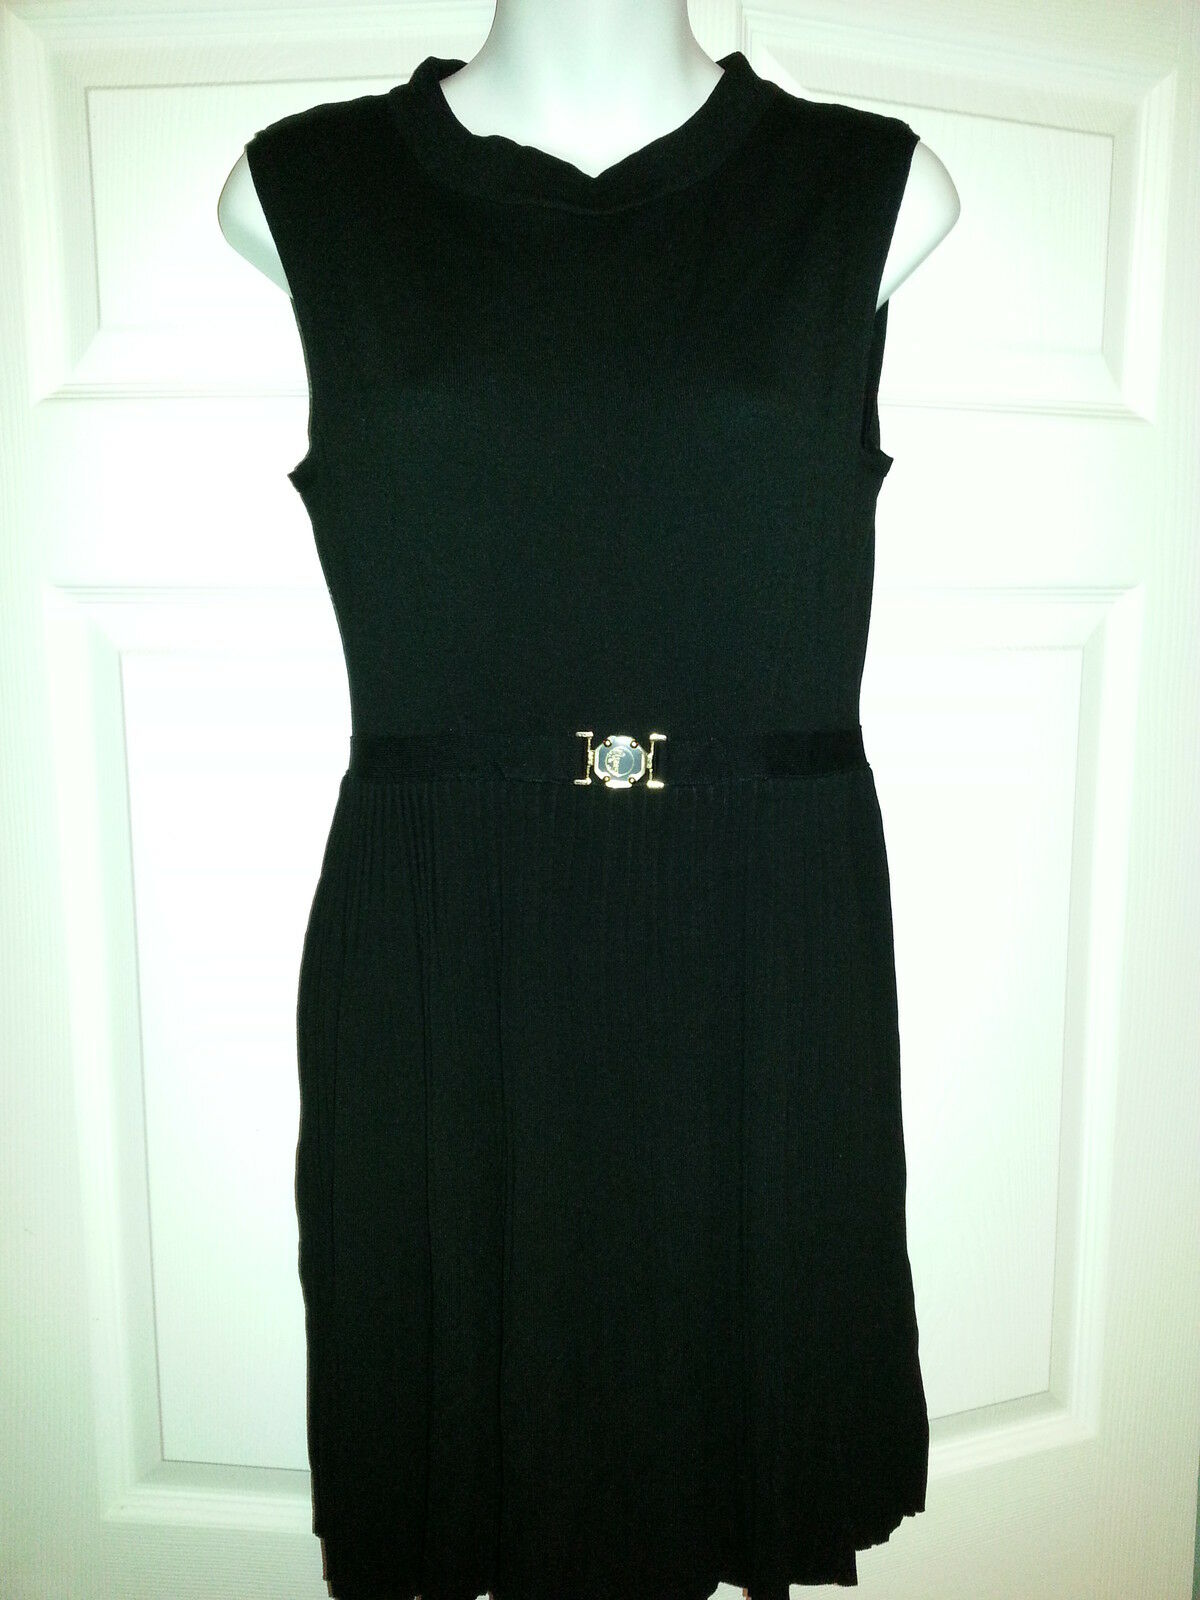 VERSACE WOMEN'S SLEEVELESS RIBBED DRESS BRAND BRAND BRAND NEW WITH TAGS SIZE 8 US REG  495 cfc9d0